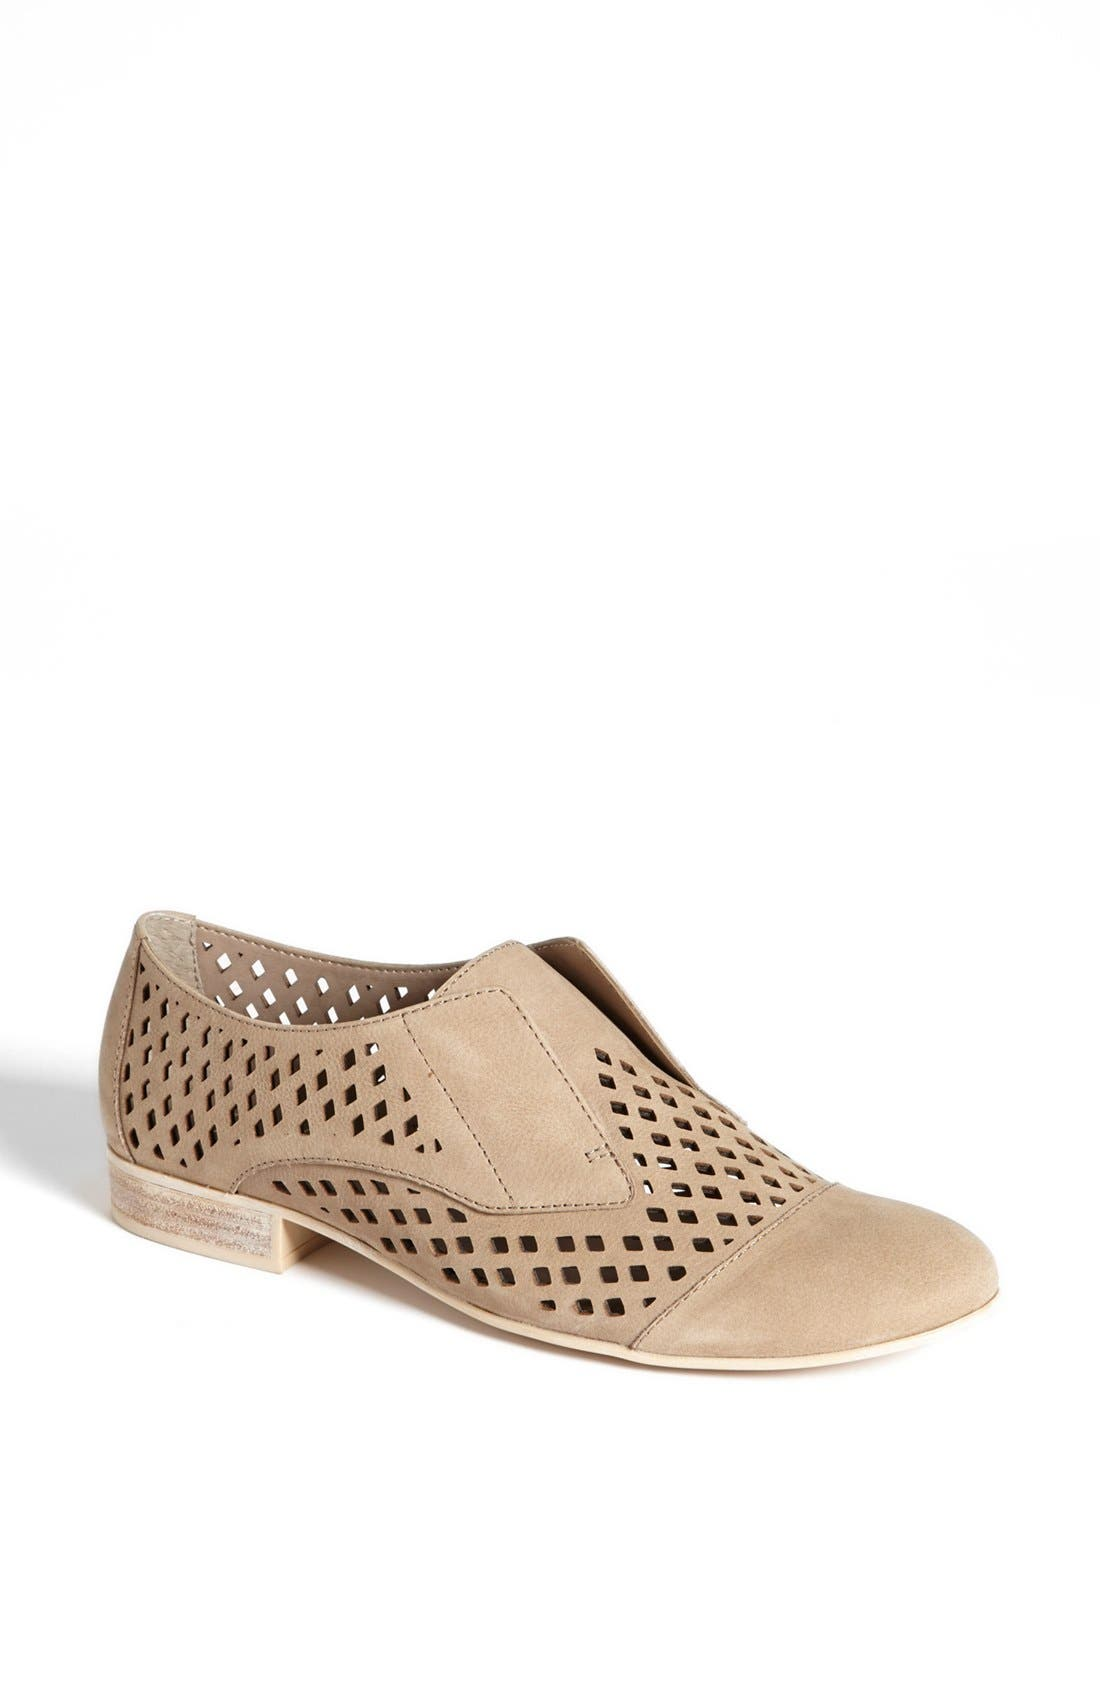 Alternate Image 1 Selected - Franco Sarto 'Amplify' Leather Flat